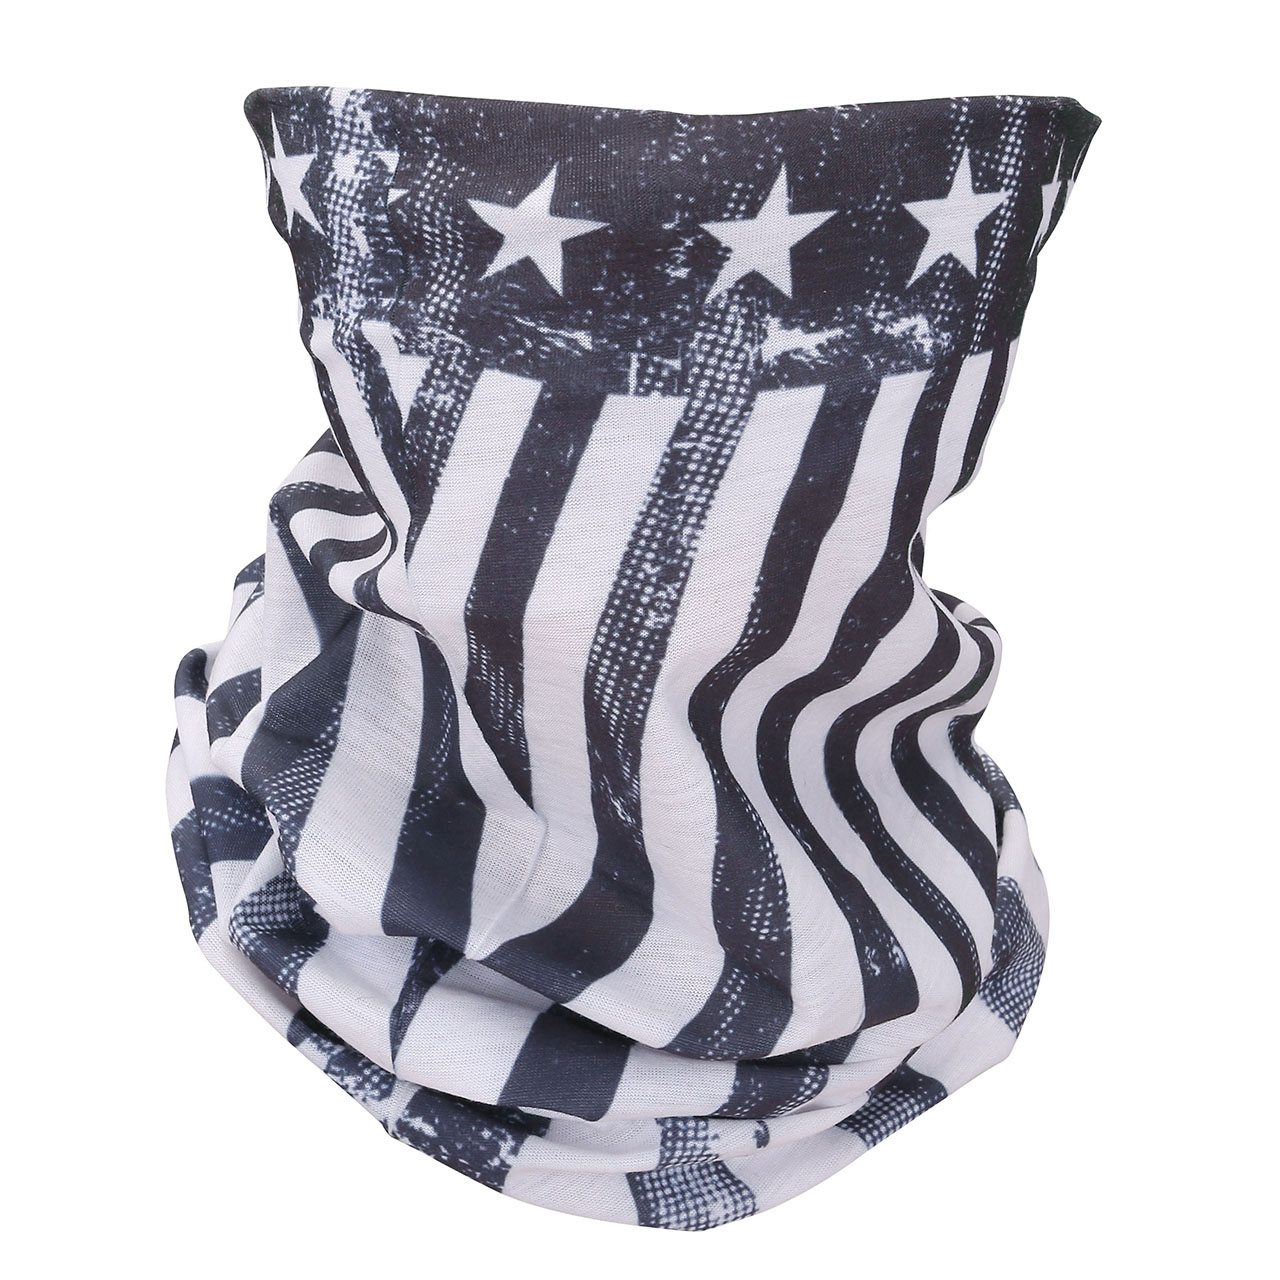 ACBungji The Old Glory US Flag Multifunction Magic Motorcycle Outdoor Sport Seamless Tube Half Face Mask Headband Scarf Black & White